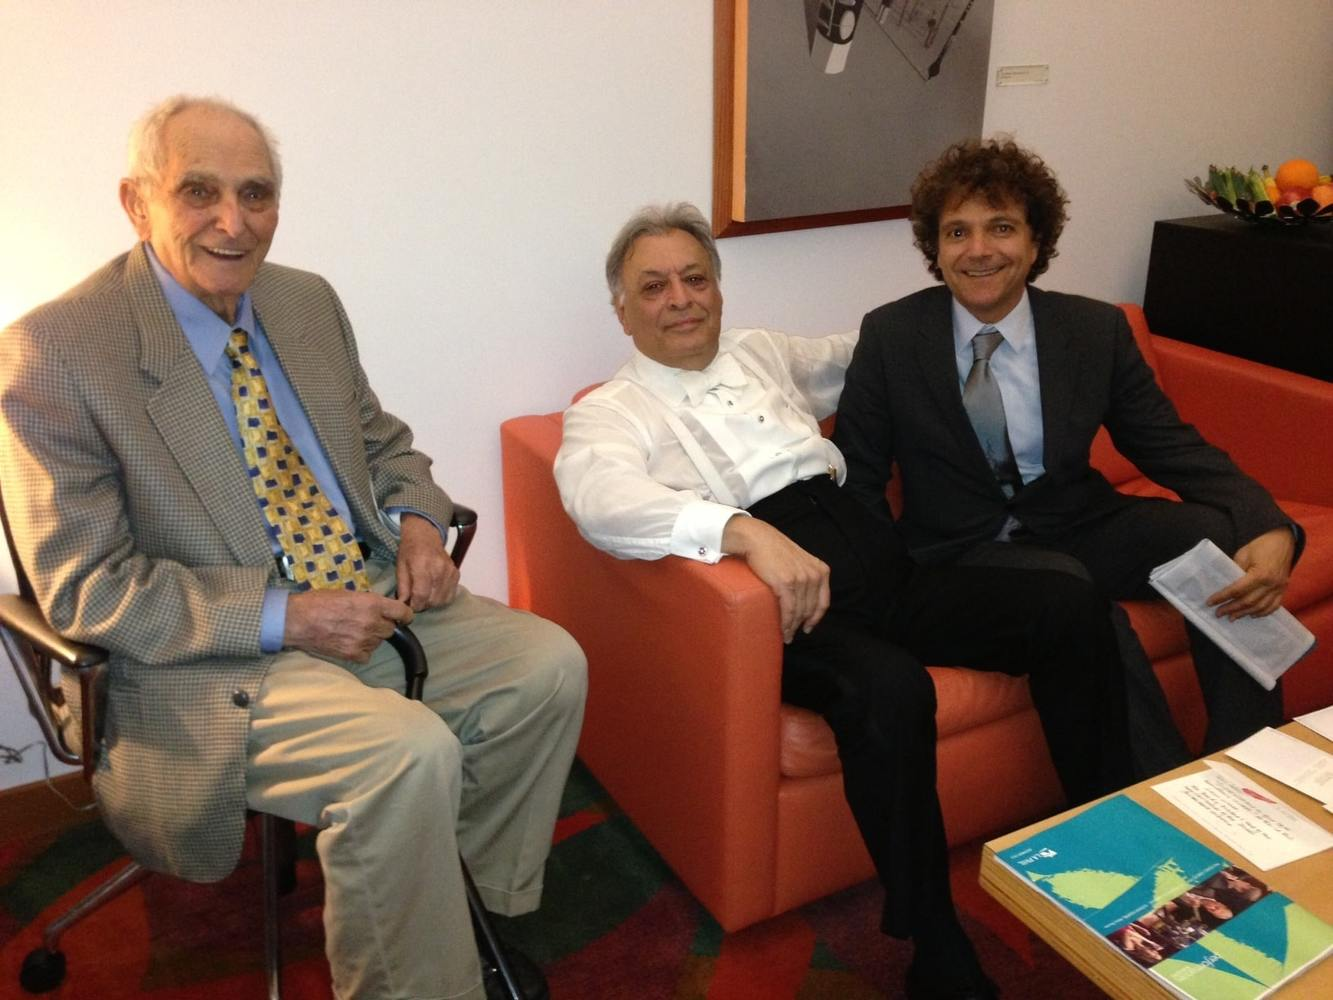 Intermission: Carmine Marinelli (left), maestro Zubin Mehta and Anthony Marinelli catching up during Zubin's 50th anniversary concert at Disney Hall, Los Angeles, 2012